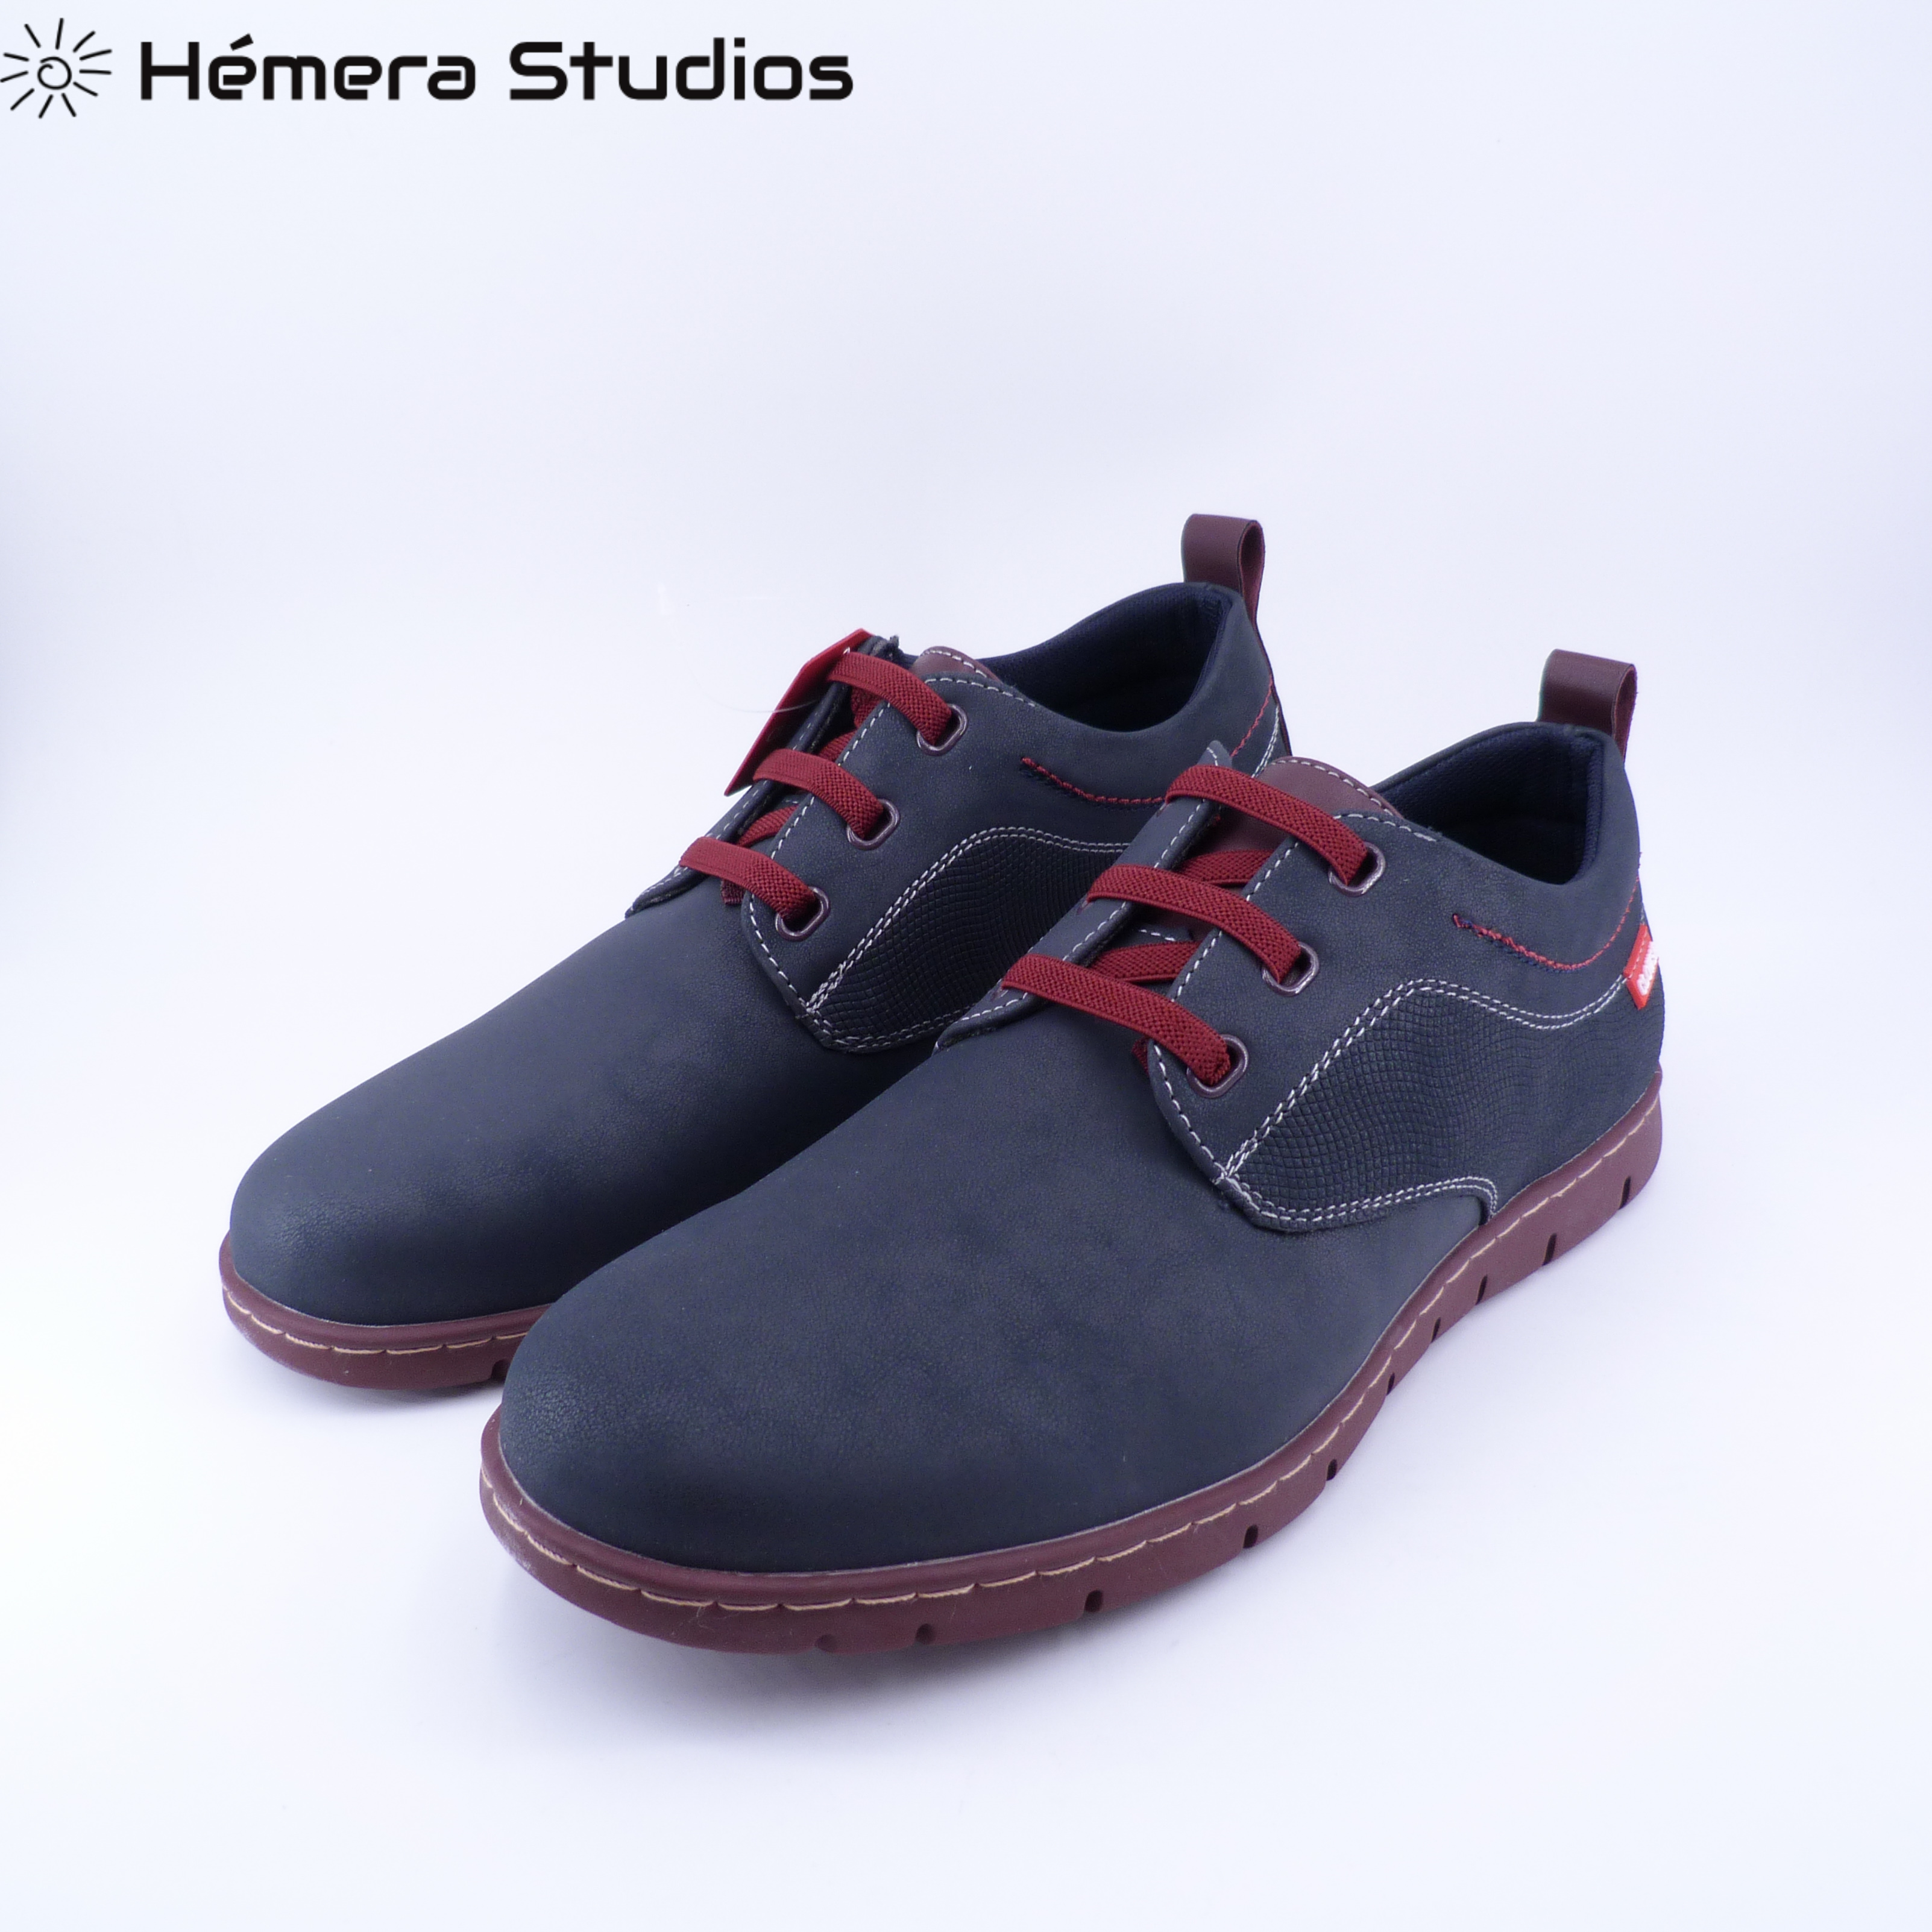 Men's Shoes 2019 Shoes Comfortable Casual Shoes For Men Footwear Drawings Men Shoes 2019 With Cords